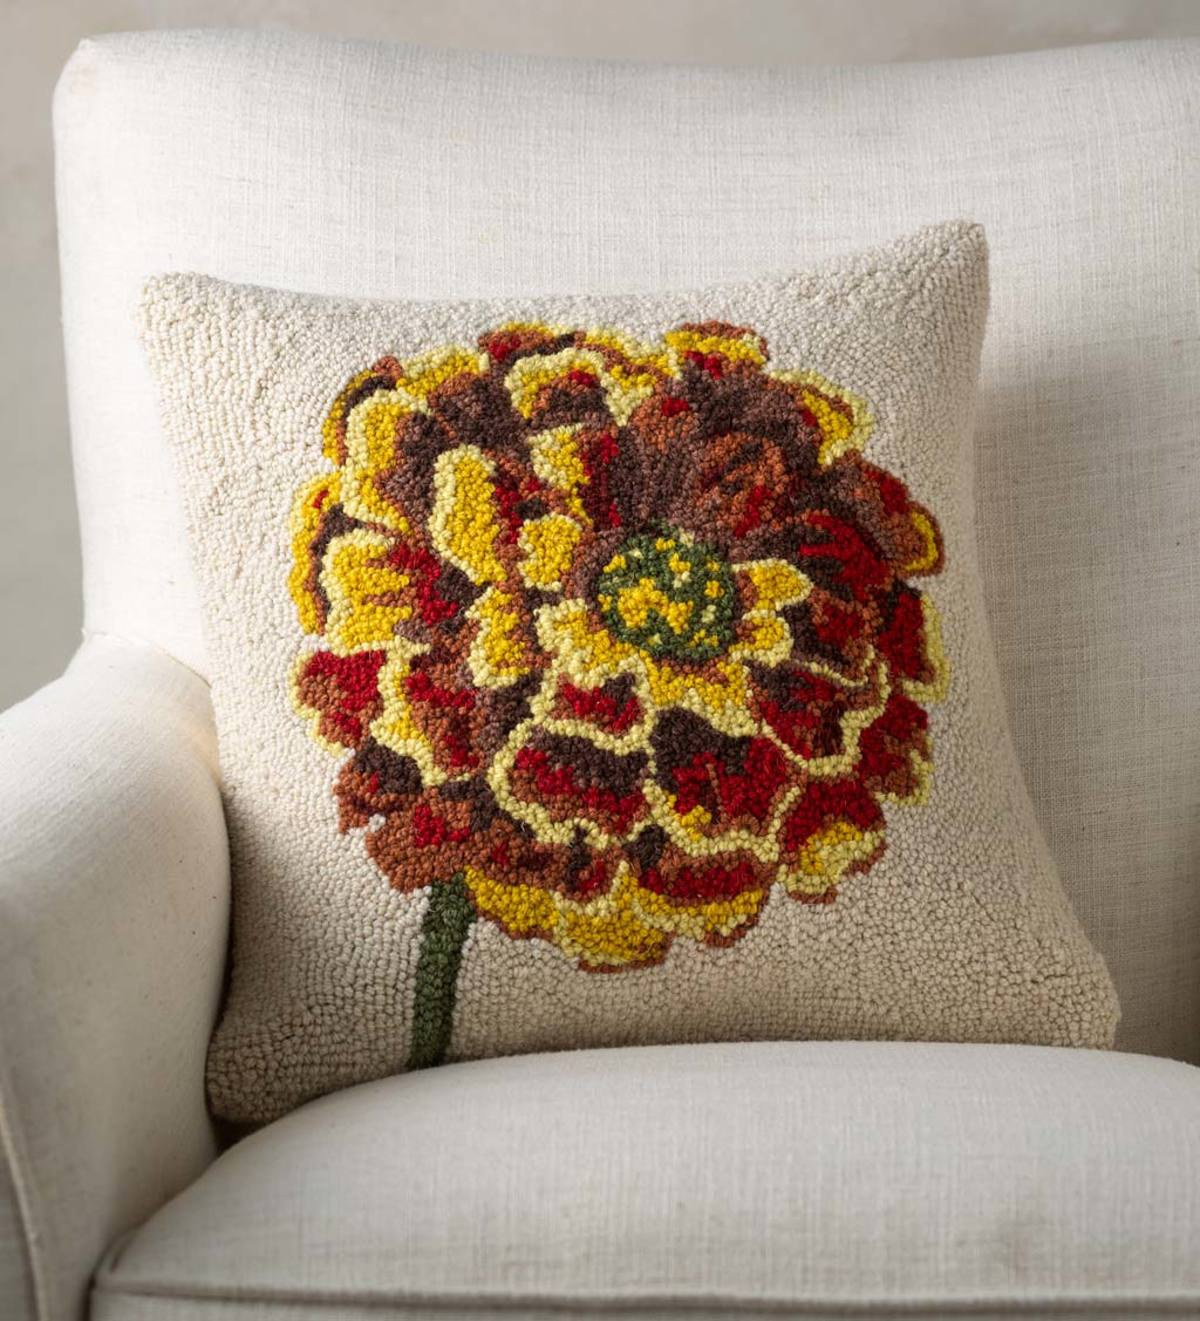 Marigold Flower Hand-Hooked Wool Decorative Throw Pillow